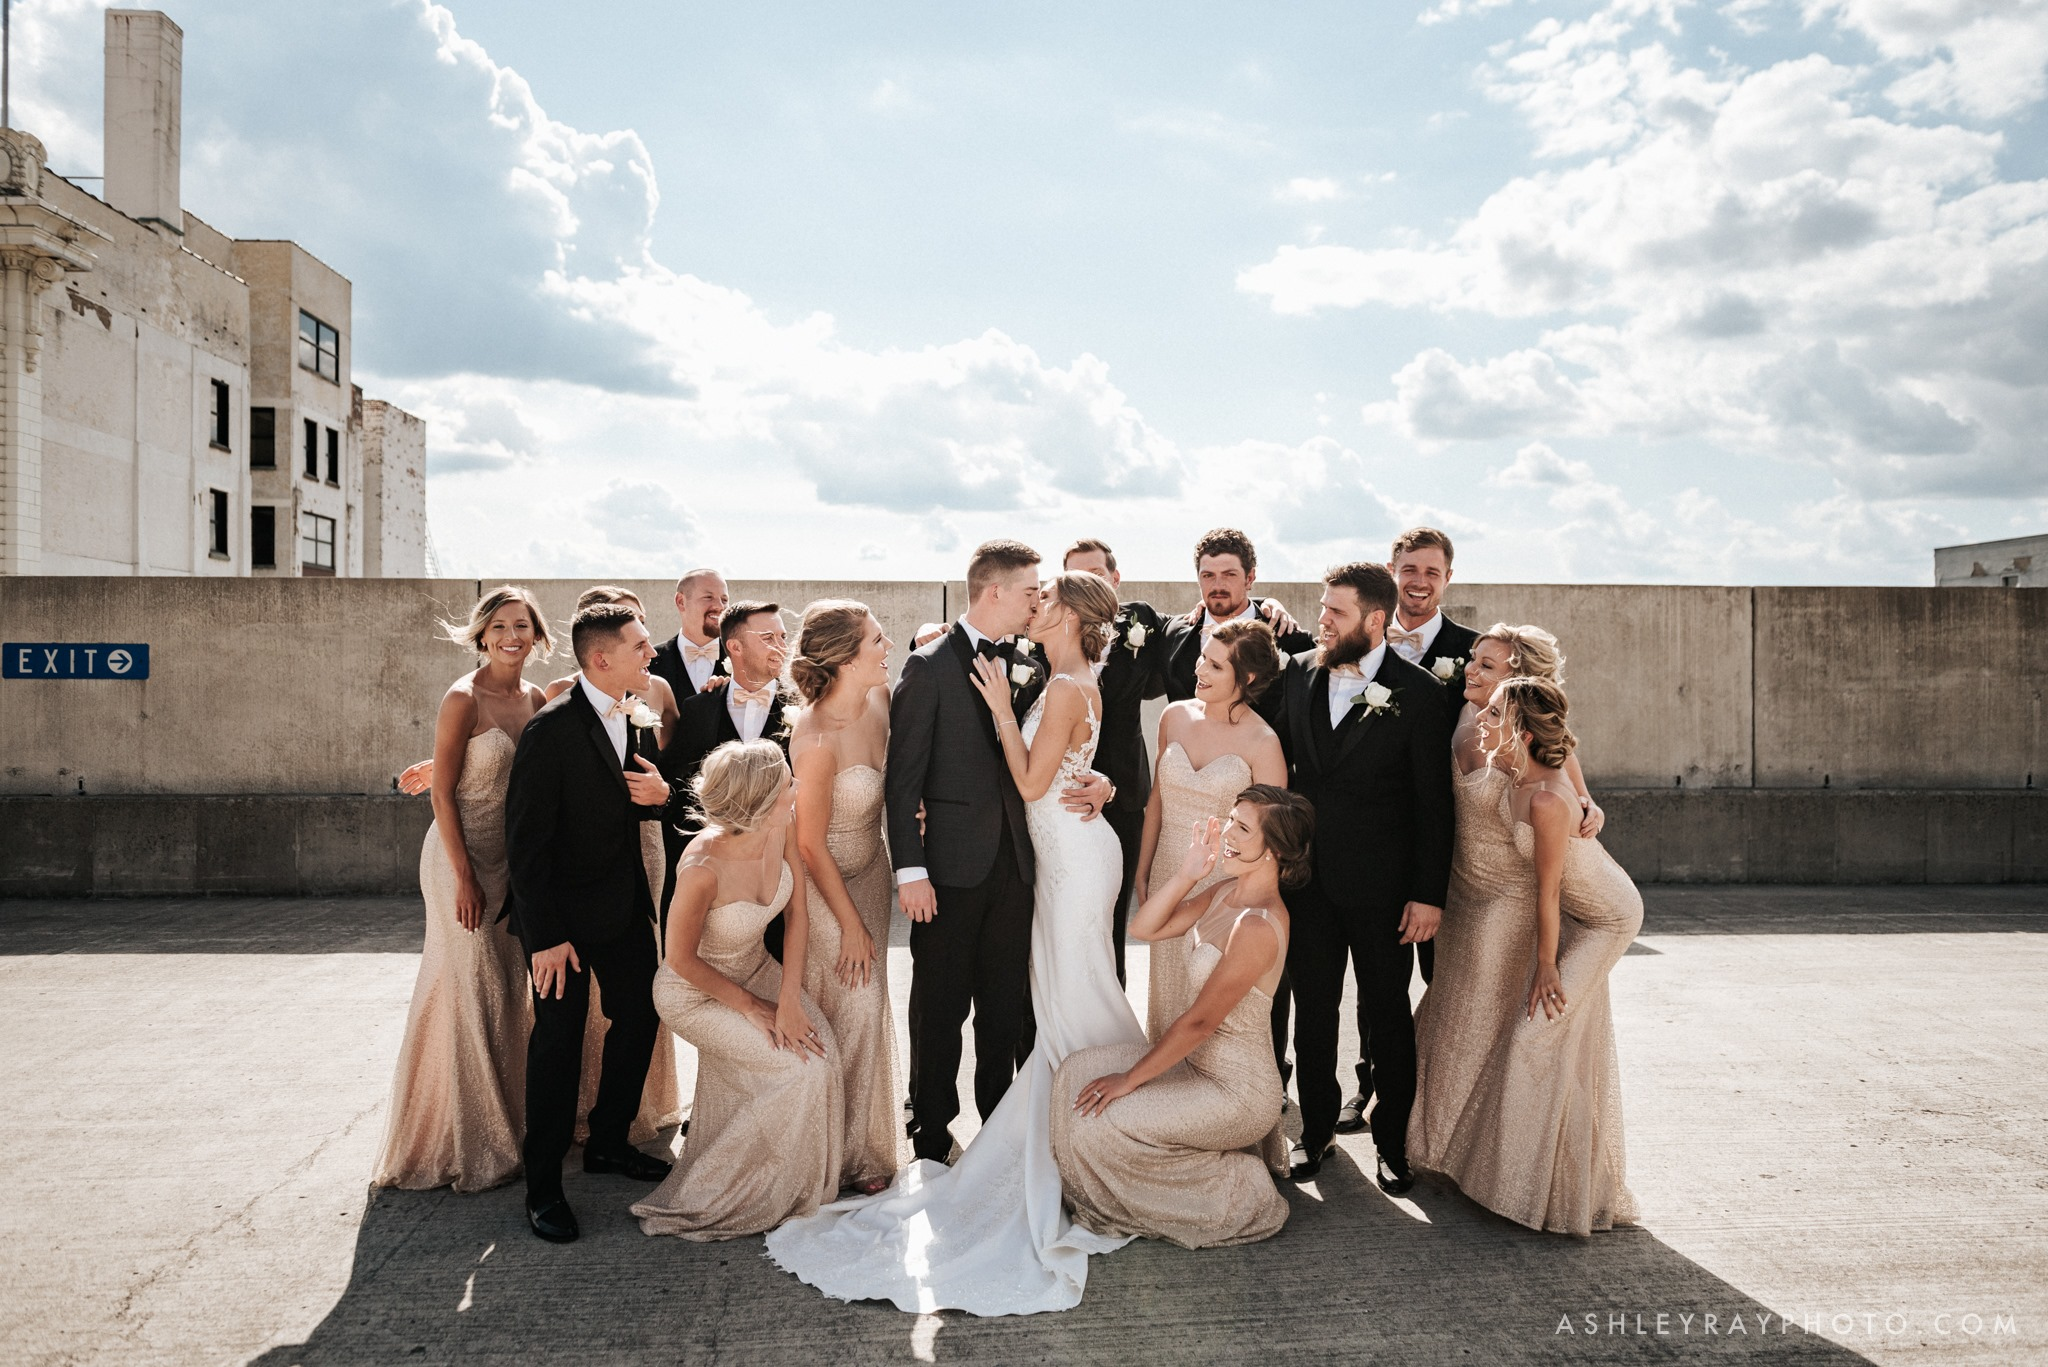 A bride and groom kissing as the bridesmaid and the groomsmen surround them